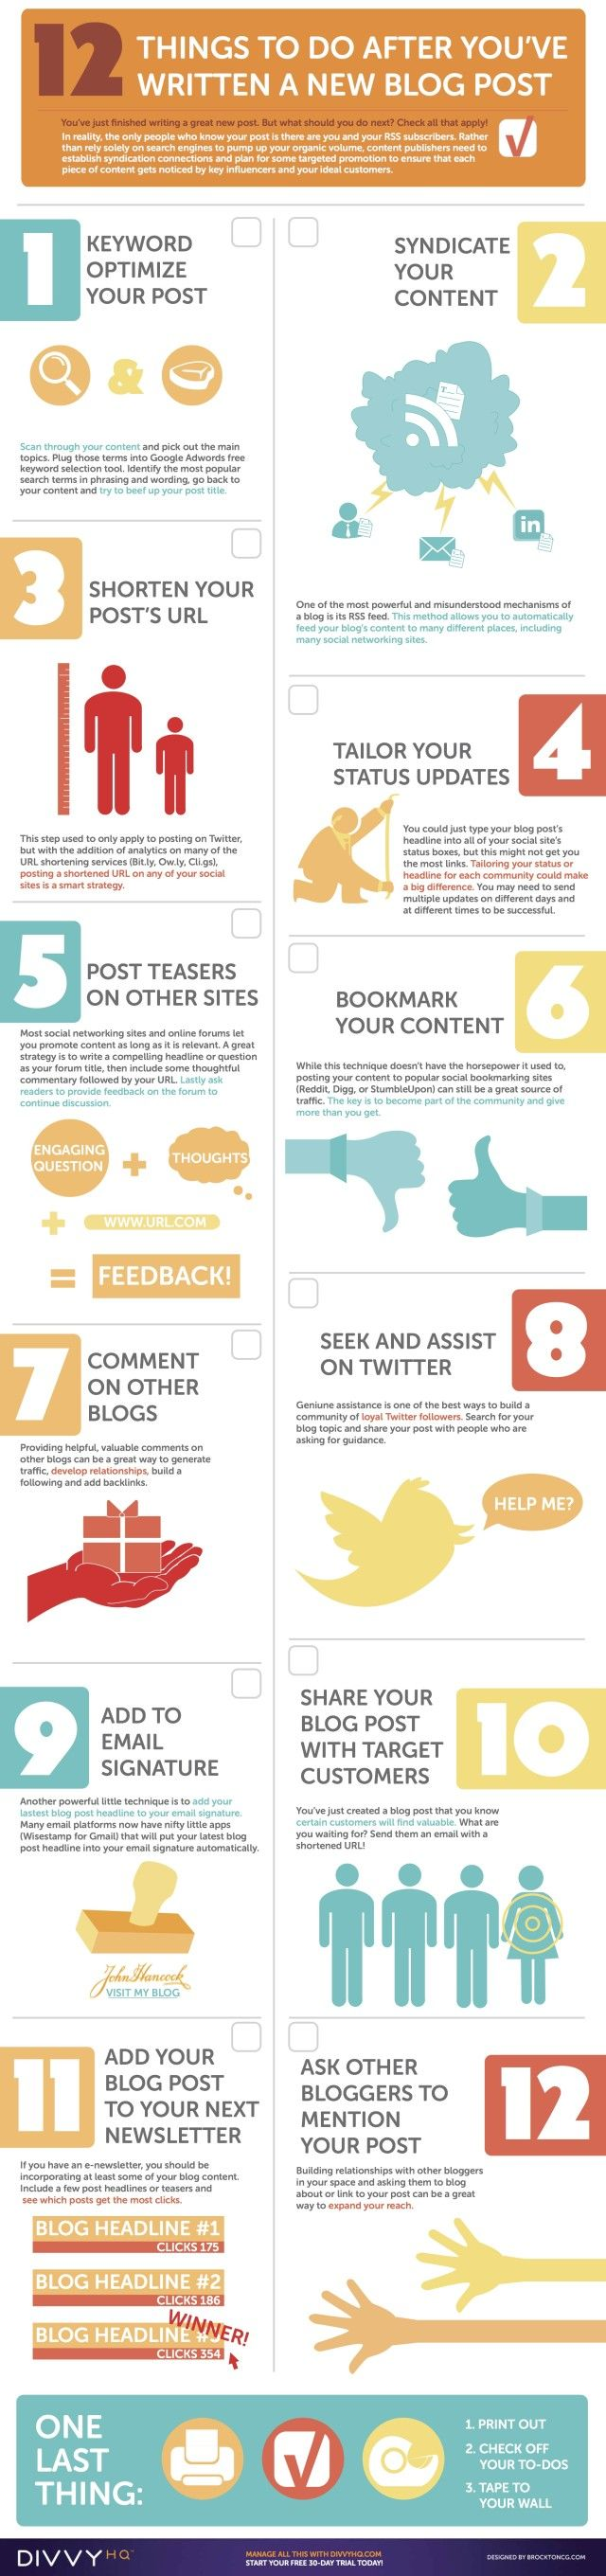 This infograph Promote Your Blog Post will help your consignment shop message get seen, says TGtbT.com